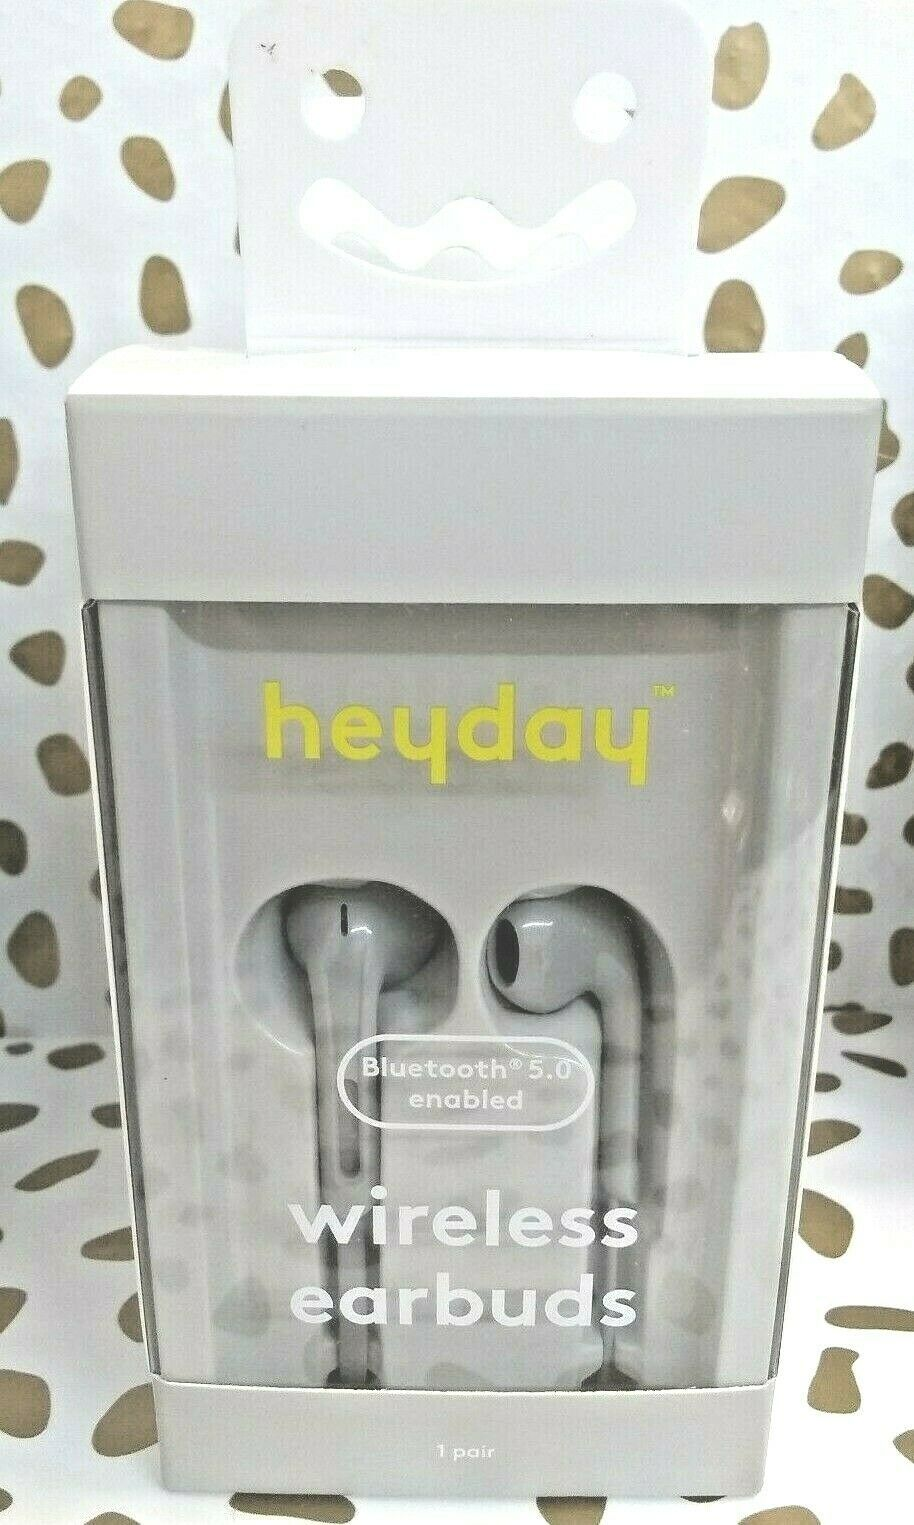 Heyday Bluetooth 5.0 Enabled Wireless Earbuds - dove grey- Sealed New --(Store)